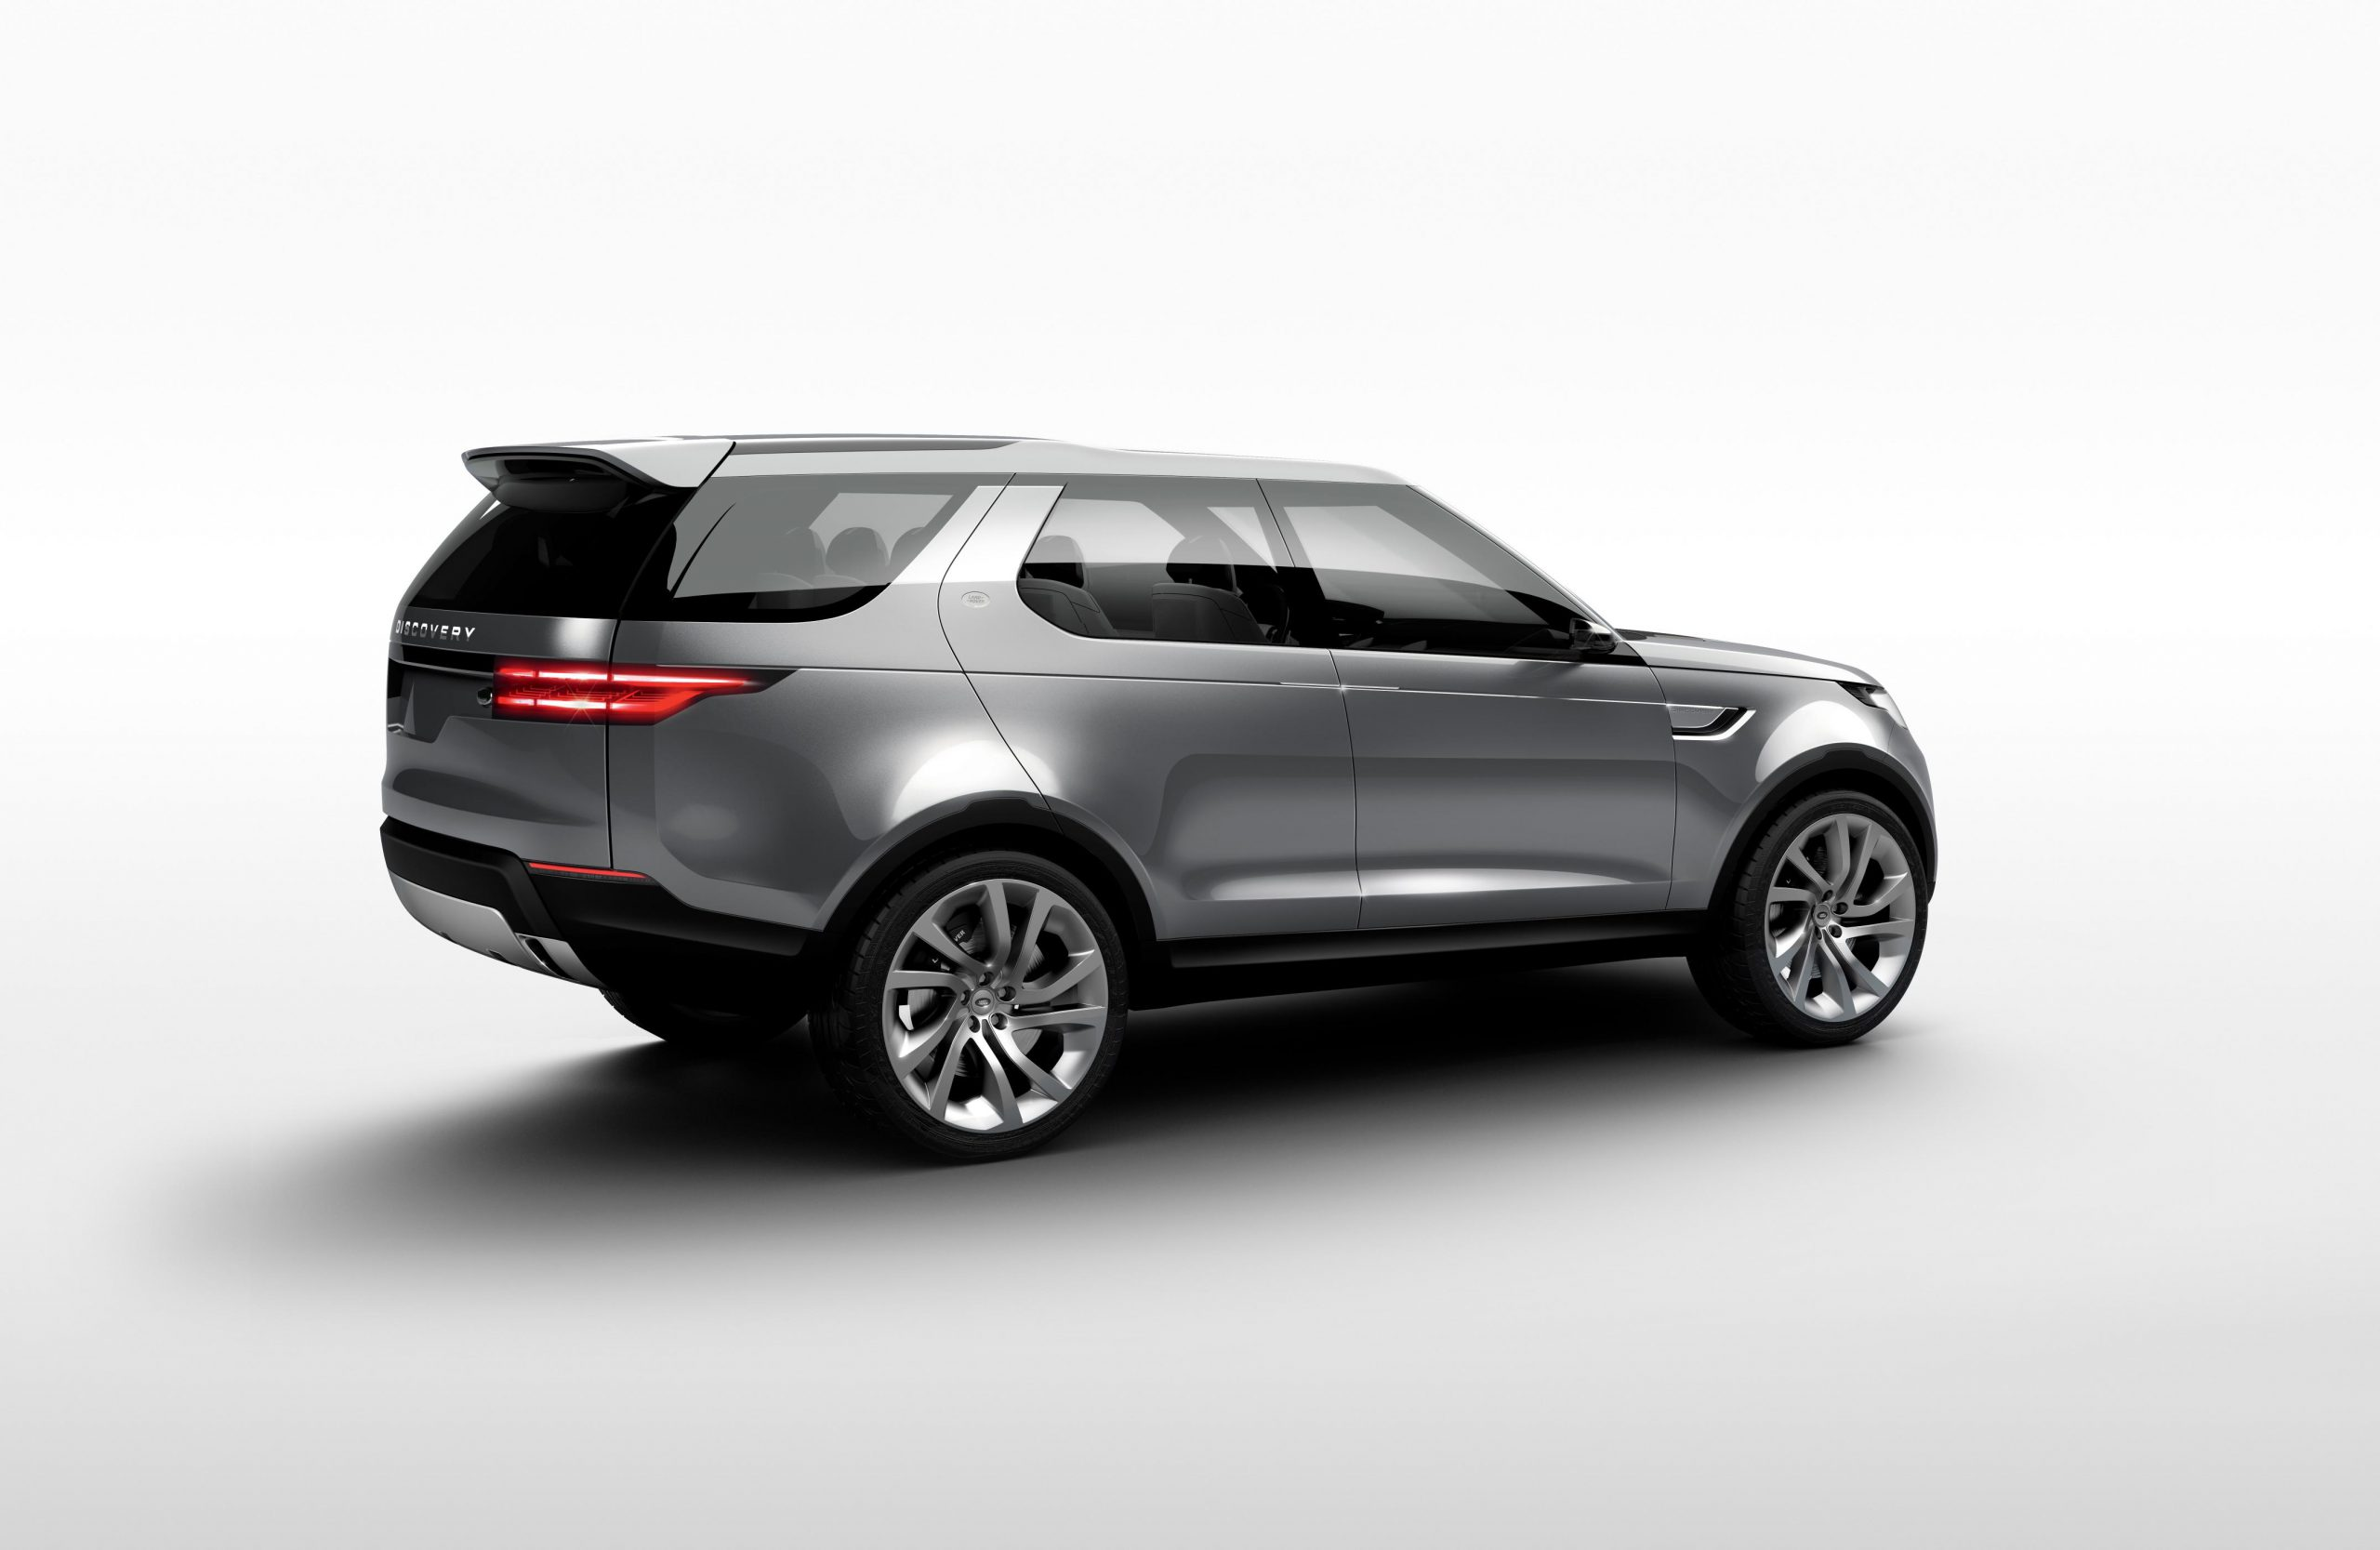 pictures velar range crossover geneva at motor show land new landrover topspeed showcased cars rover